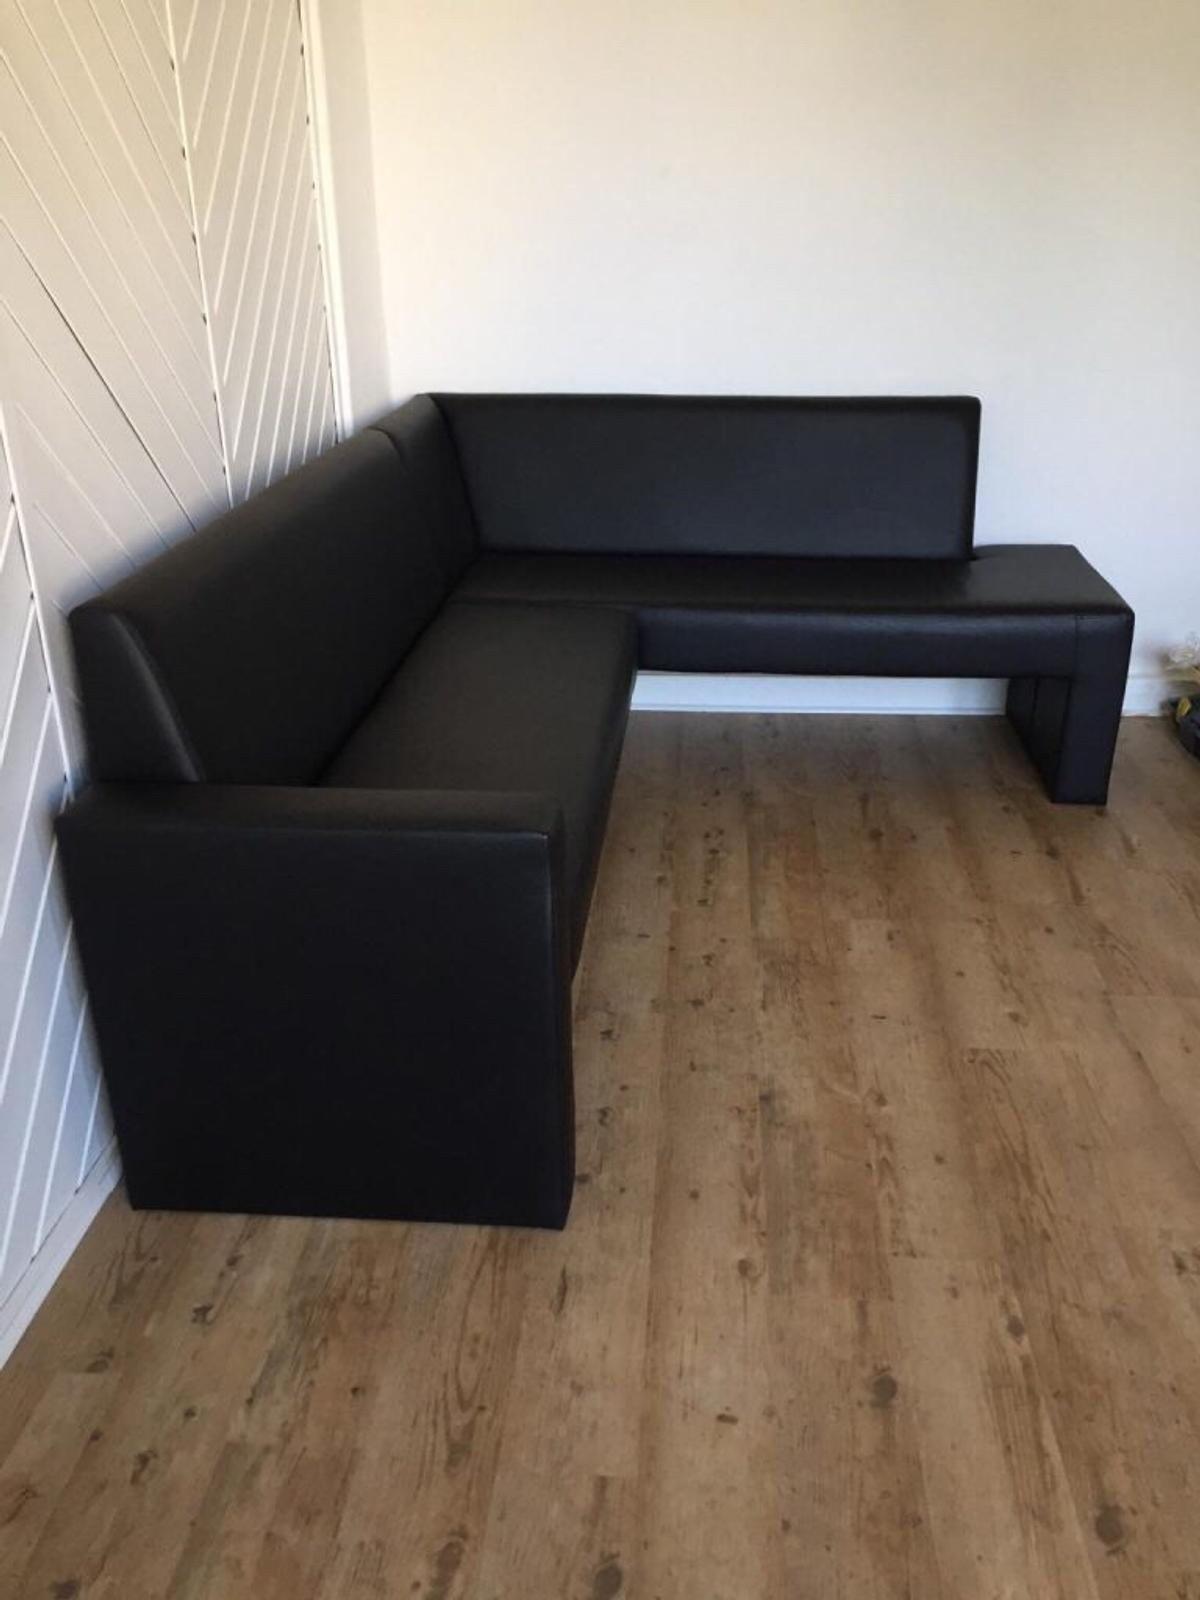 Eckbank Ikea Schwarz Kunstleder In 12051 Berlin For 99 00 For Sale Shpock